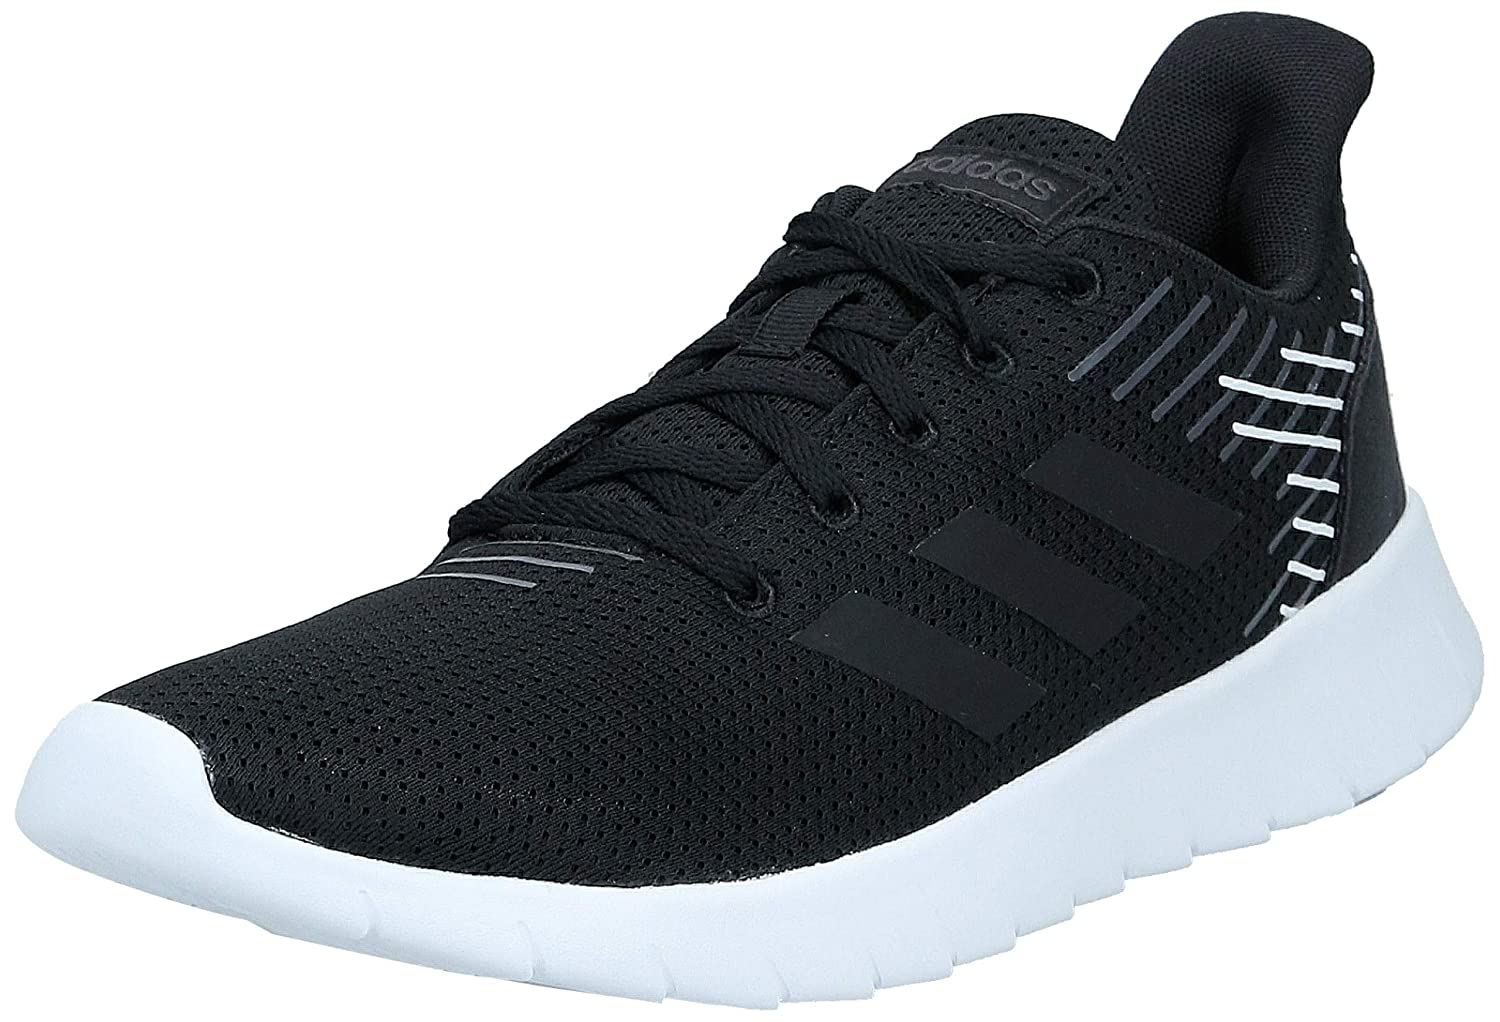 conjunción Conveniente Mentalidad  Buy Adidas Women's Asweerun Running Shoes at Amazon.in